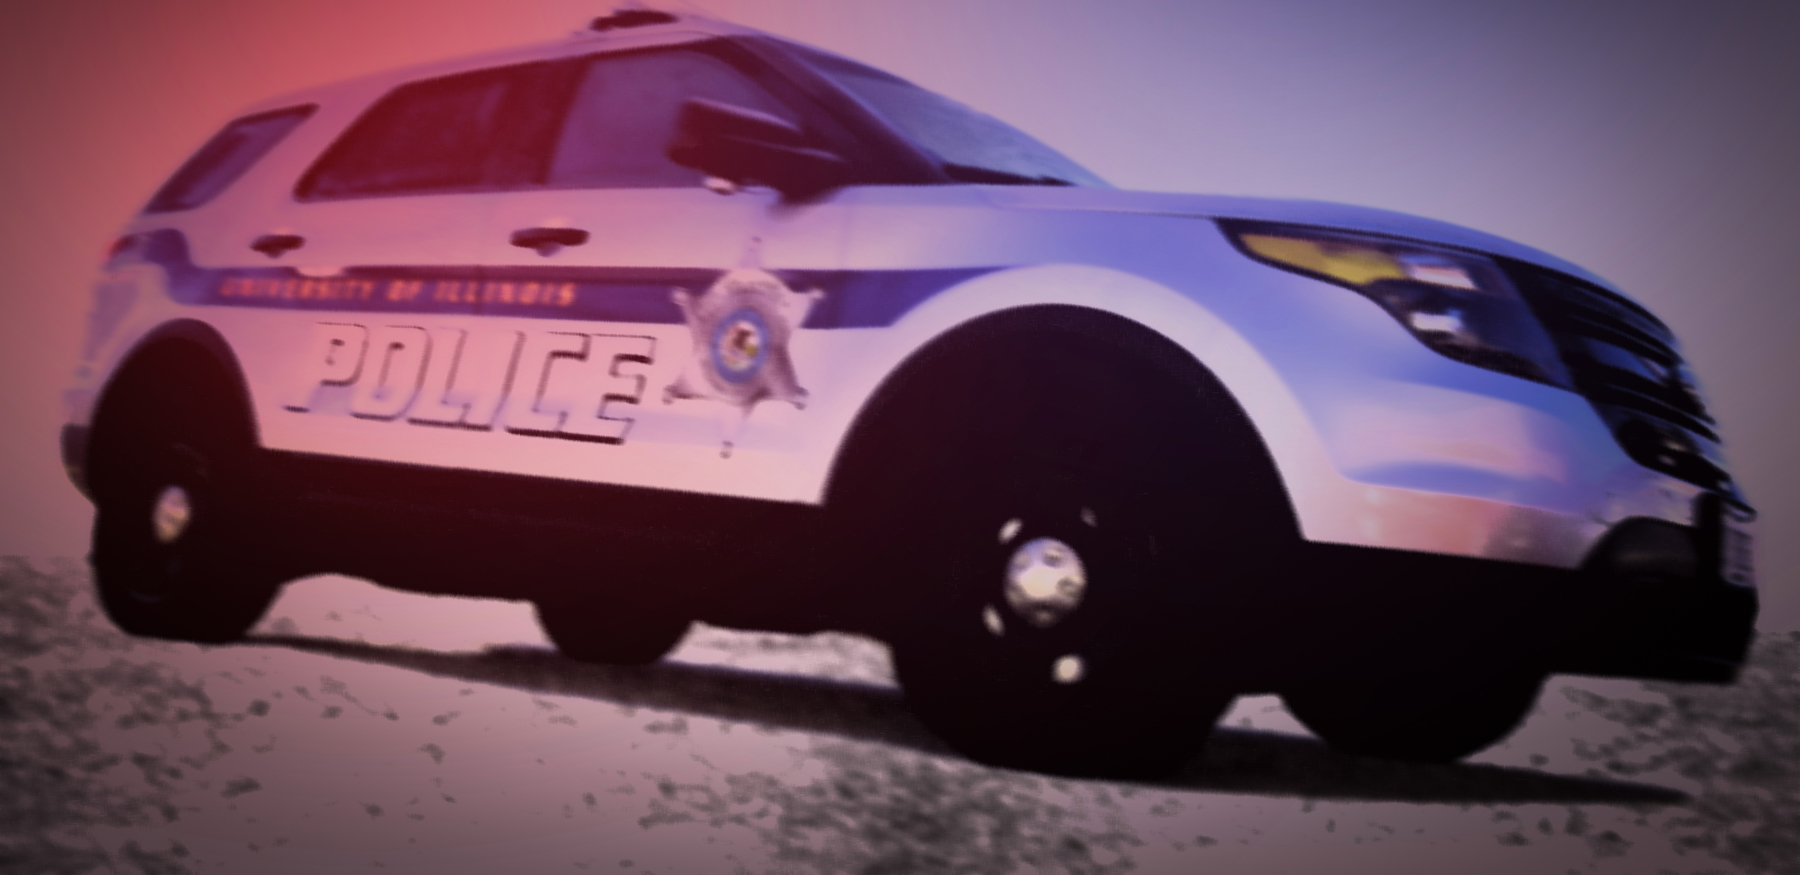 Coles County man arrested for incident which prompted alert